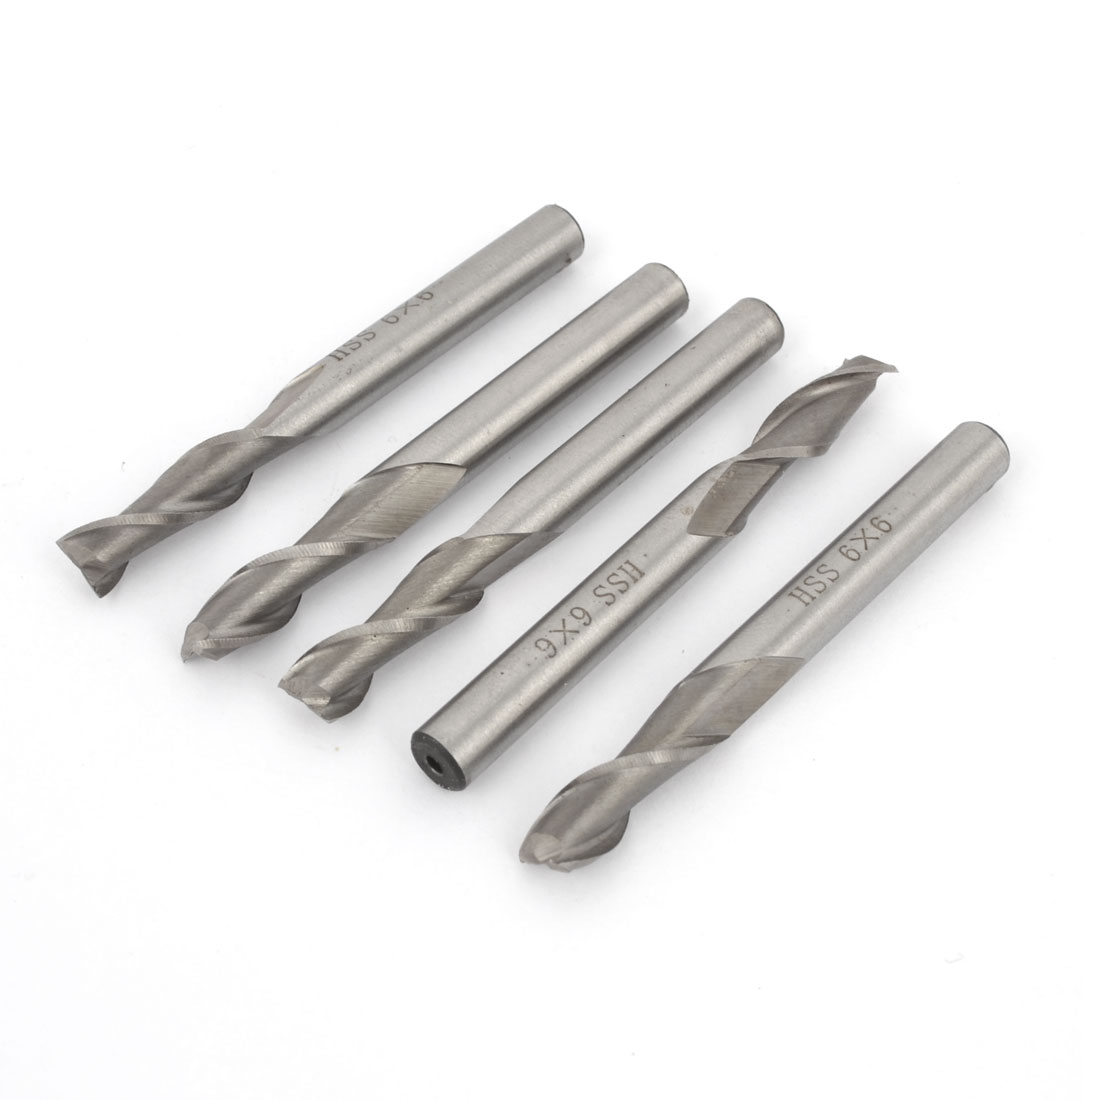 6mm Cutting Dia 6mm Shank 2 Flutes HSS End Mill Milling Cutter Tool 5Pcs